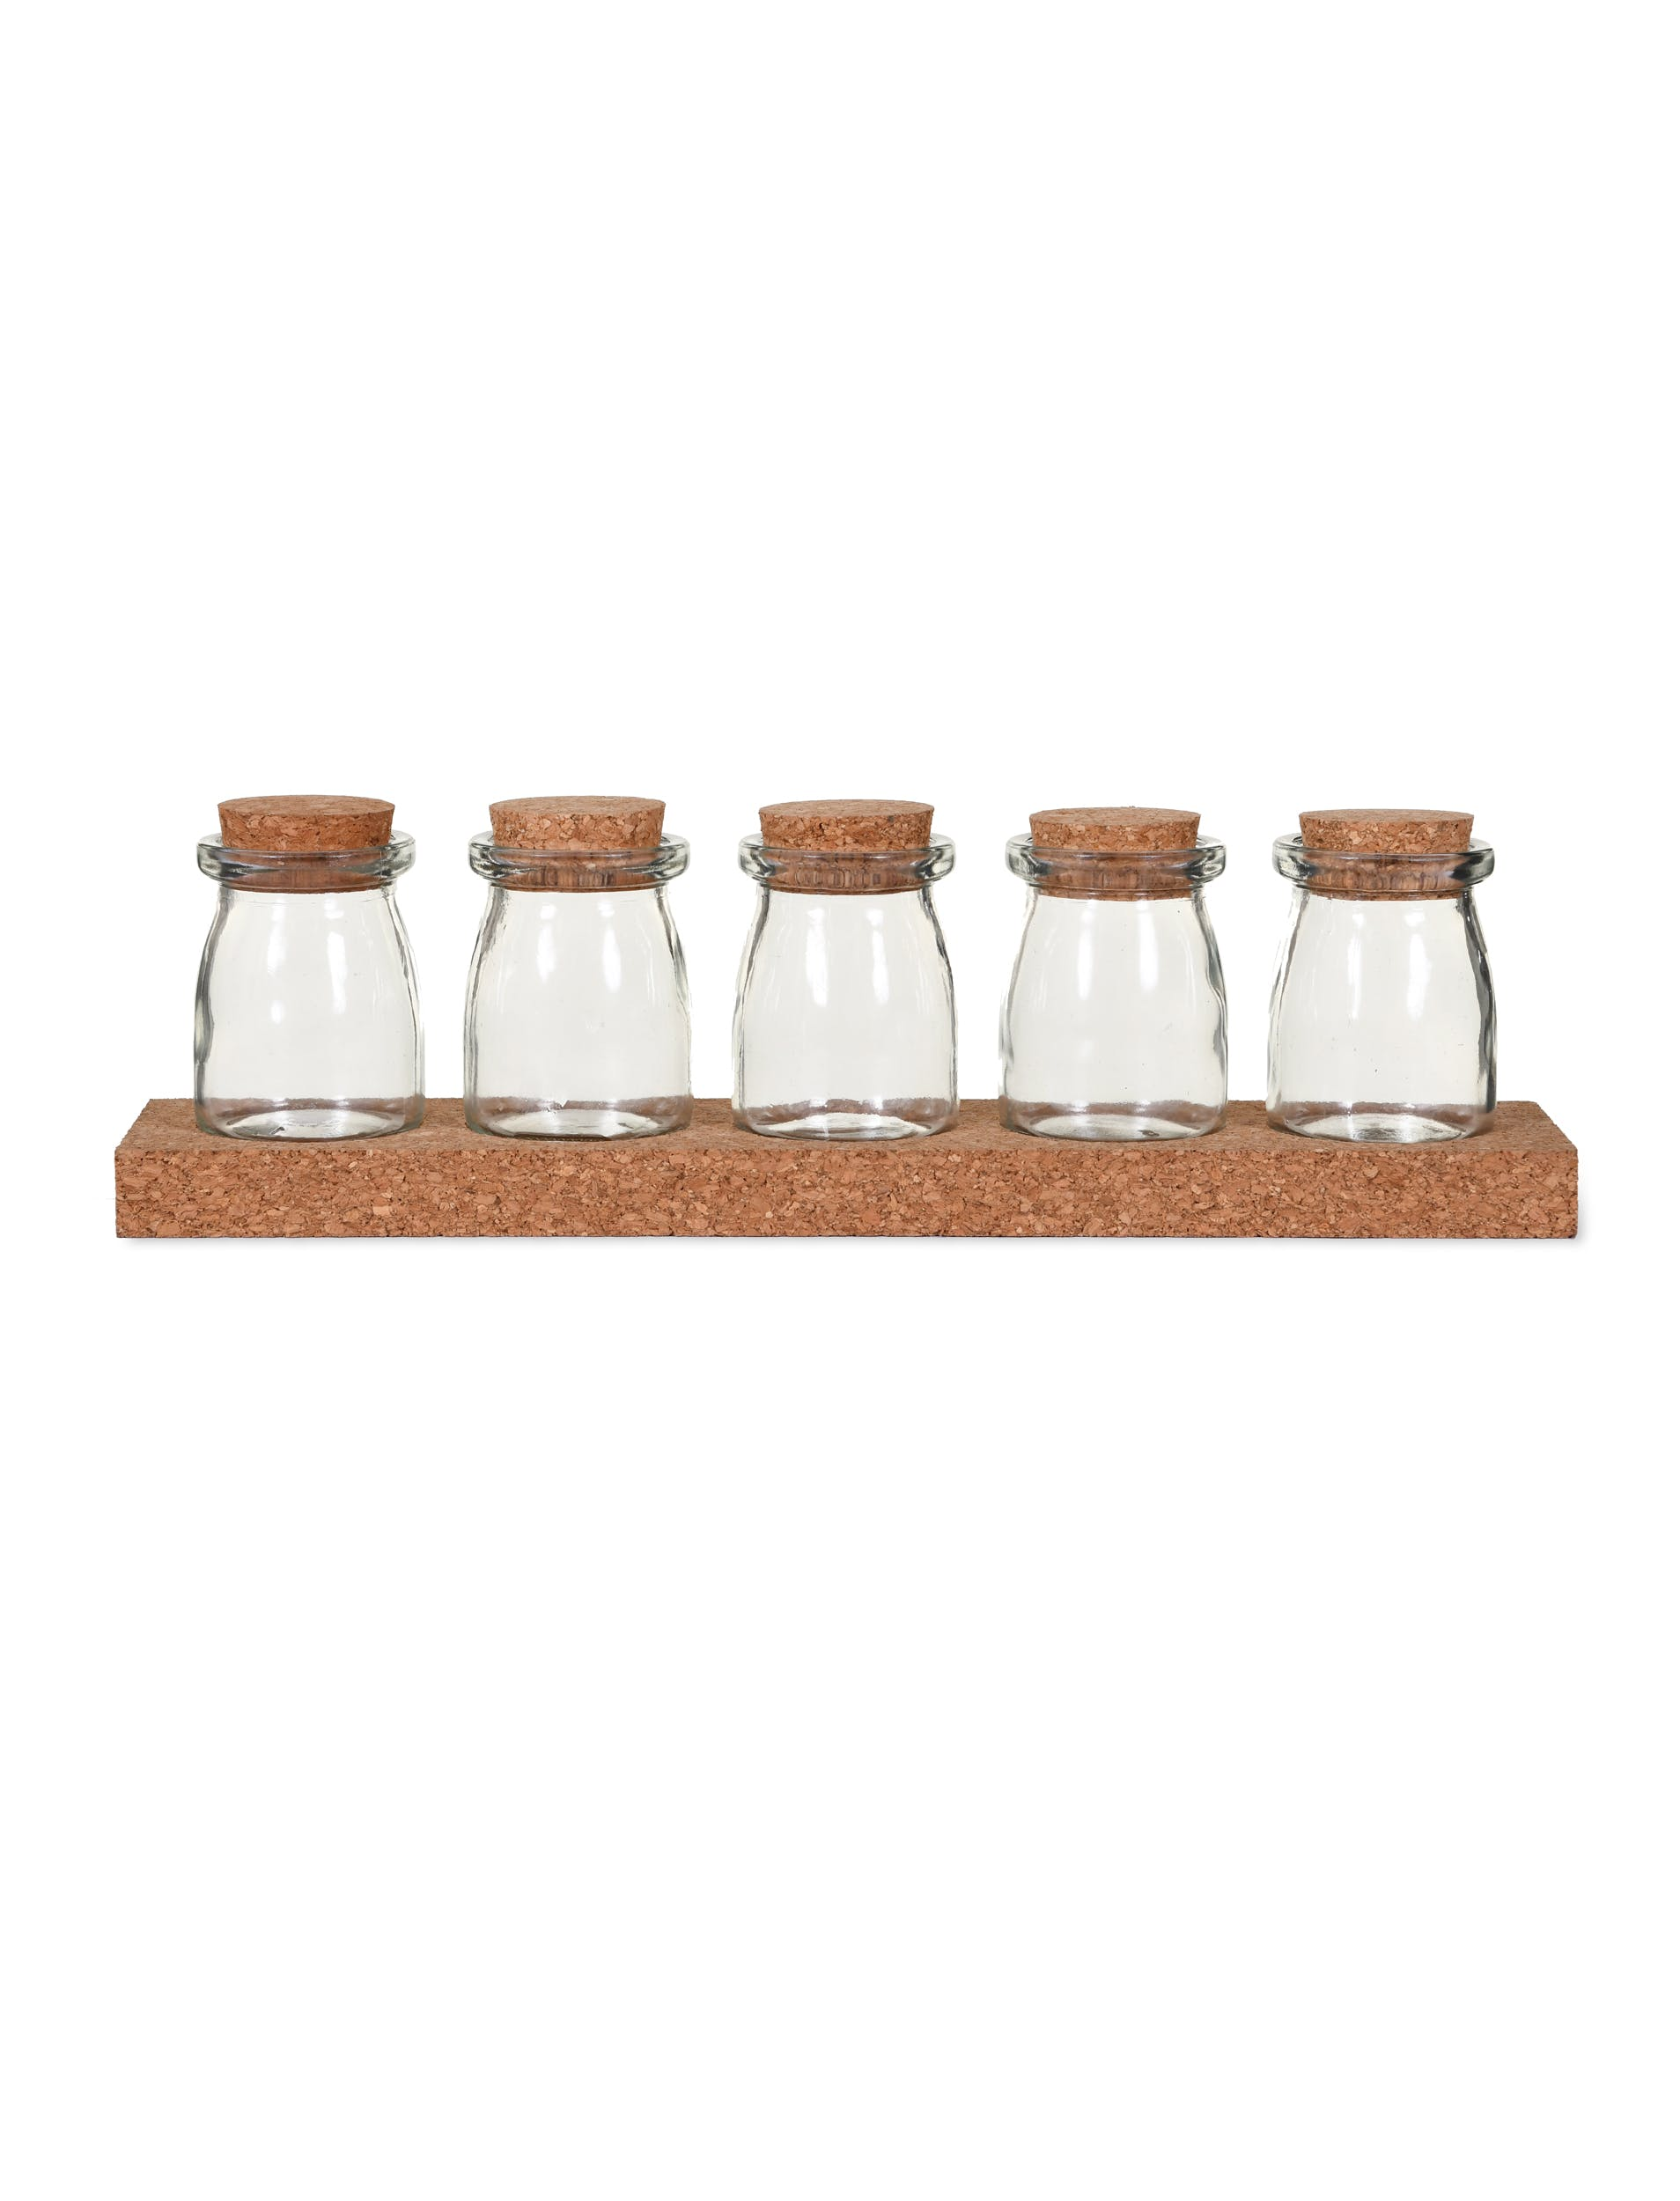 Five Jar Spice Rack